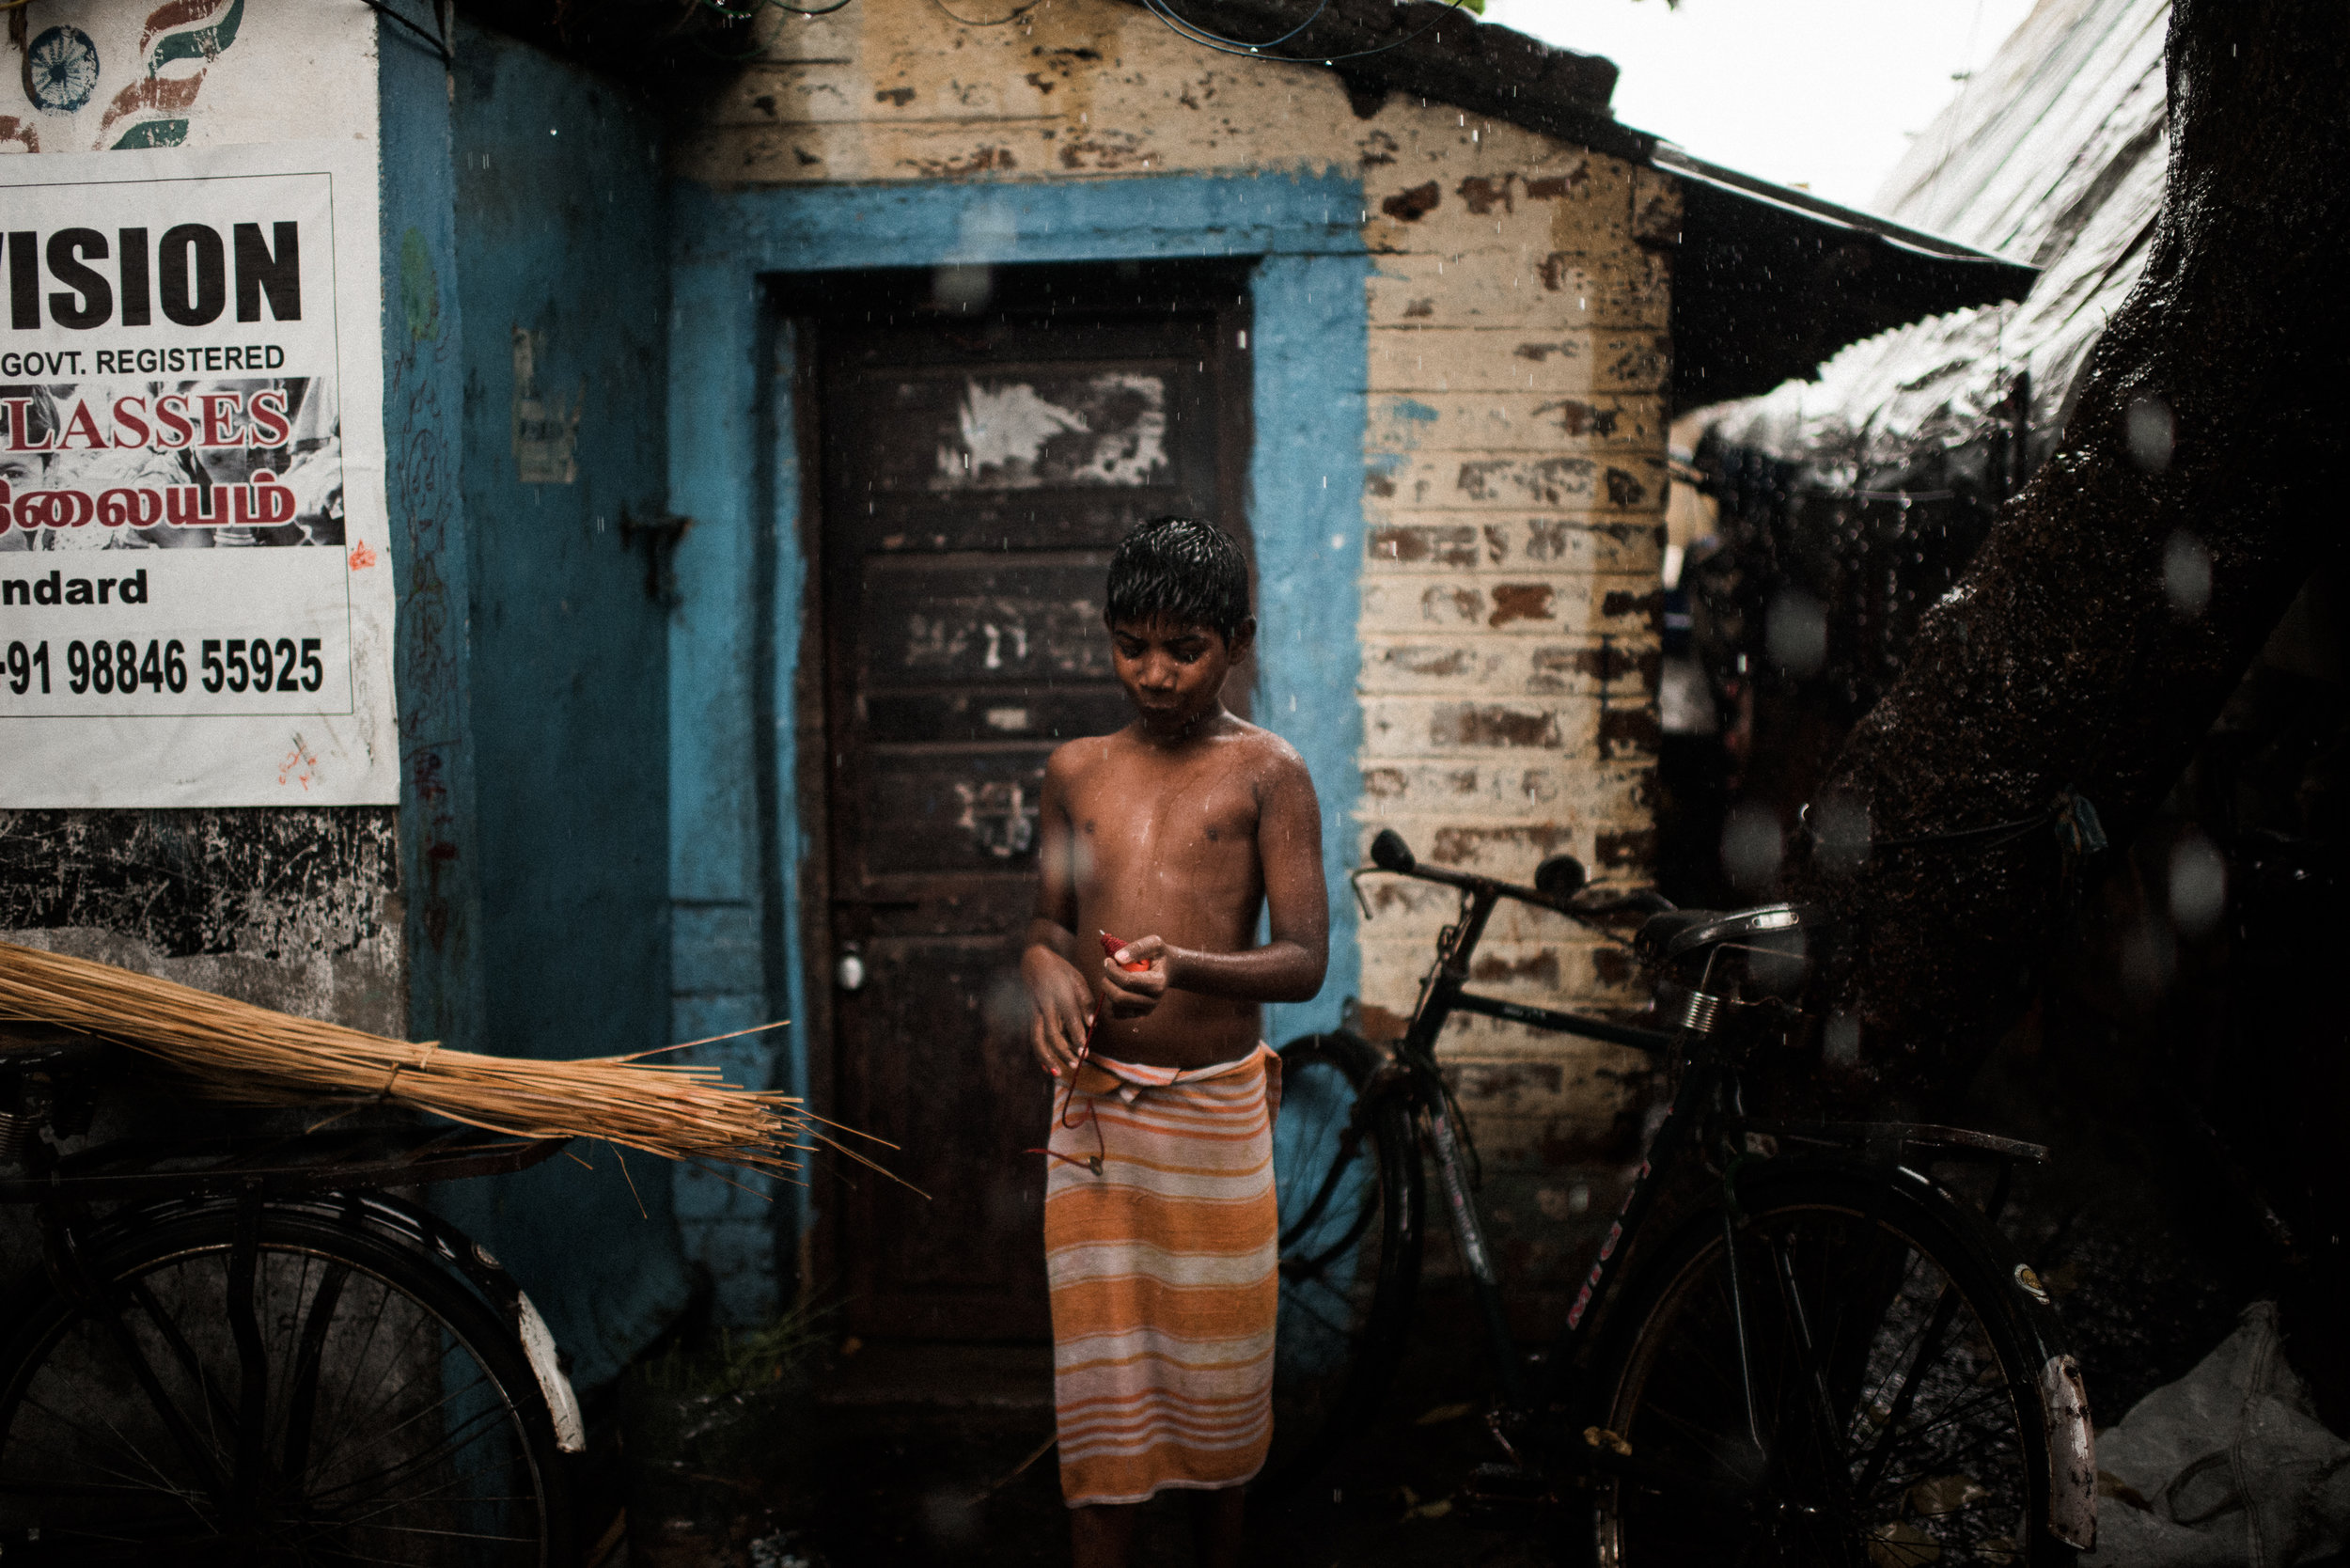 Chennai_India_NatGeo_Woman_Photographer_Humanitarian_029.jpg